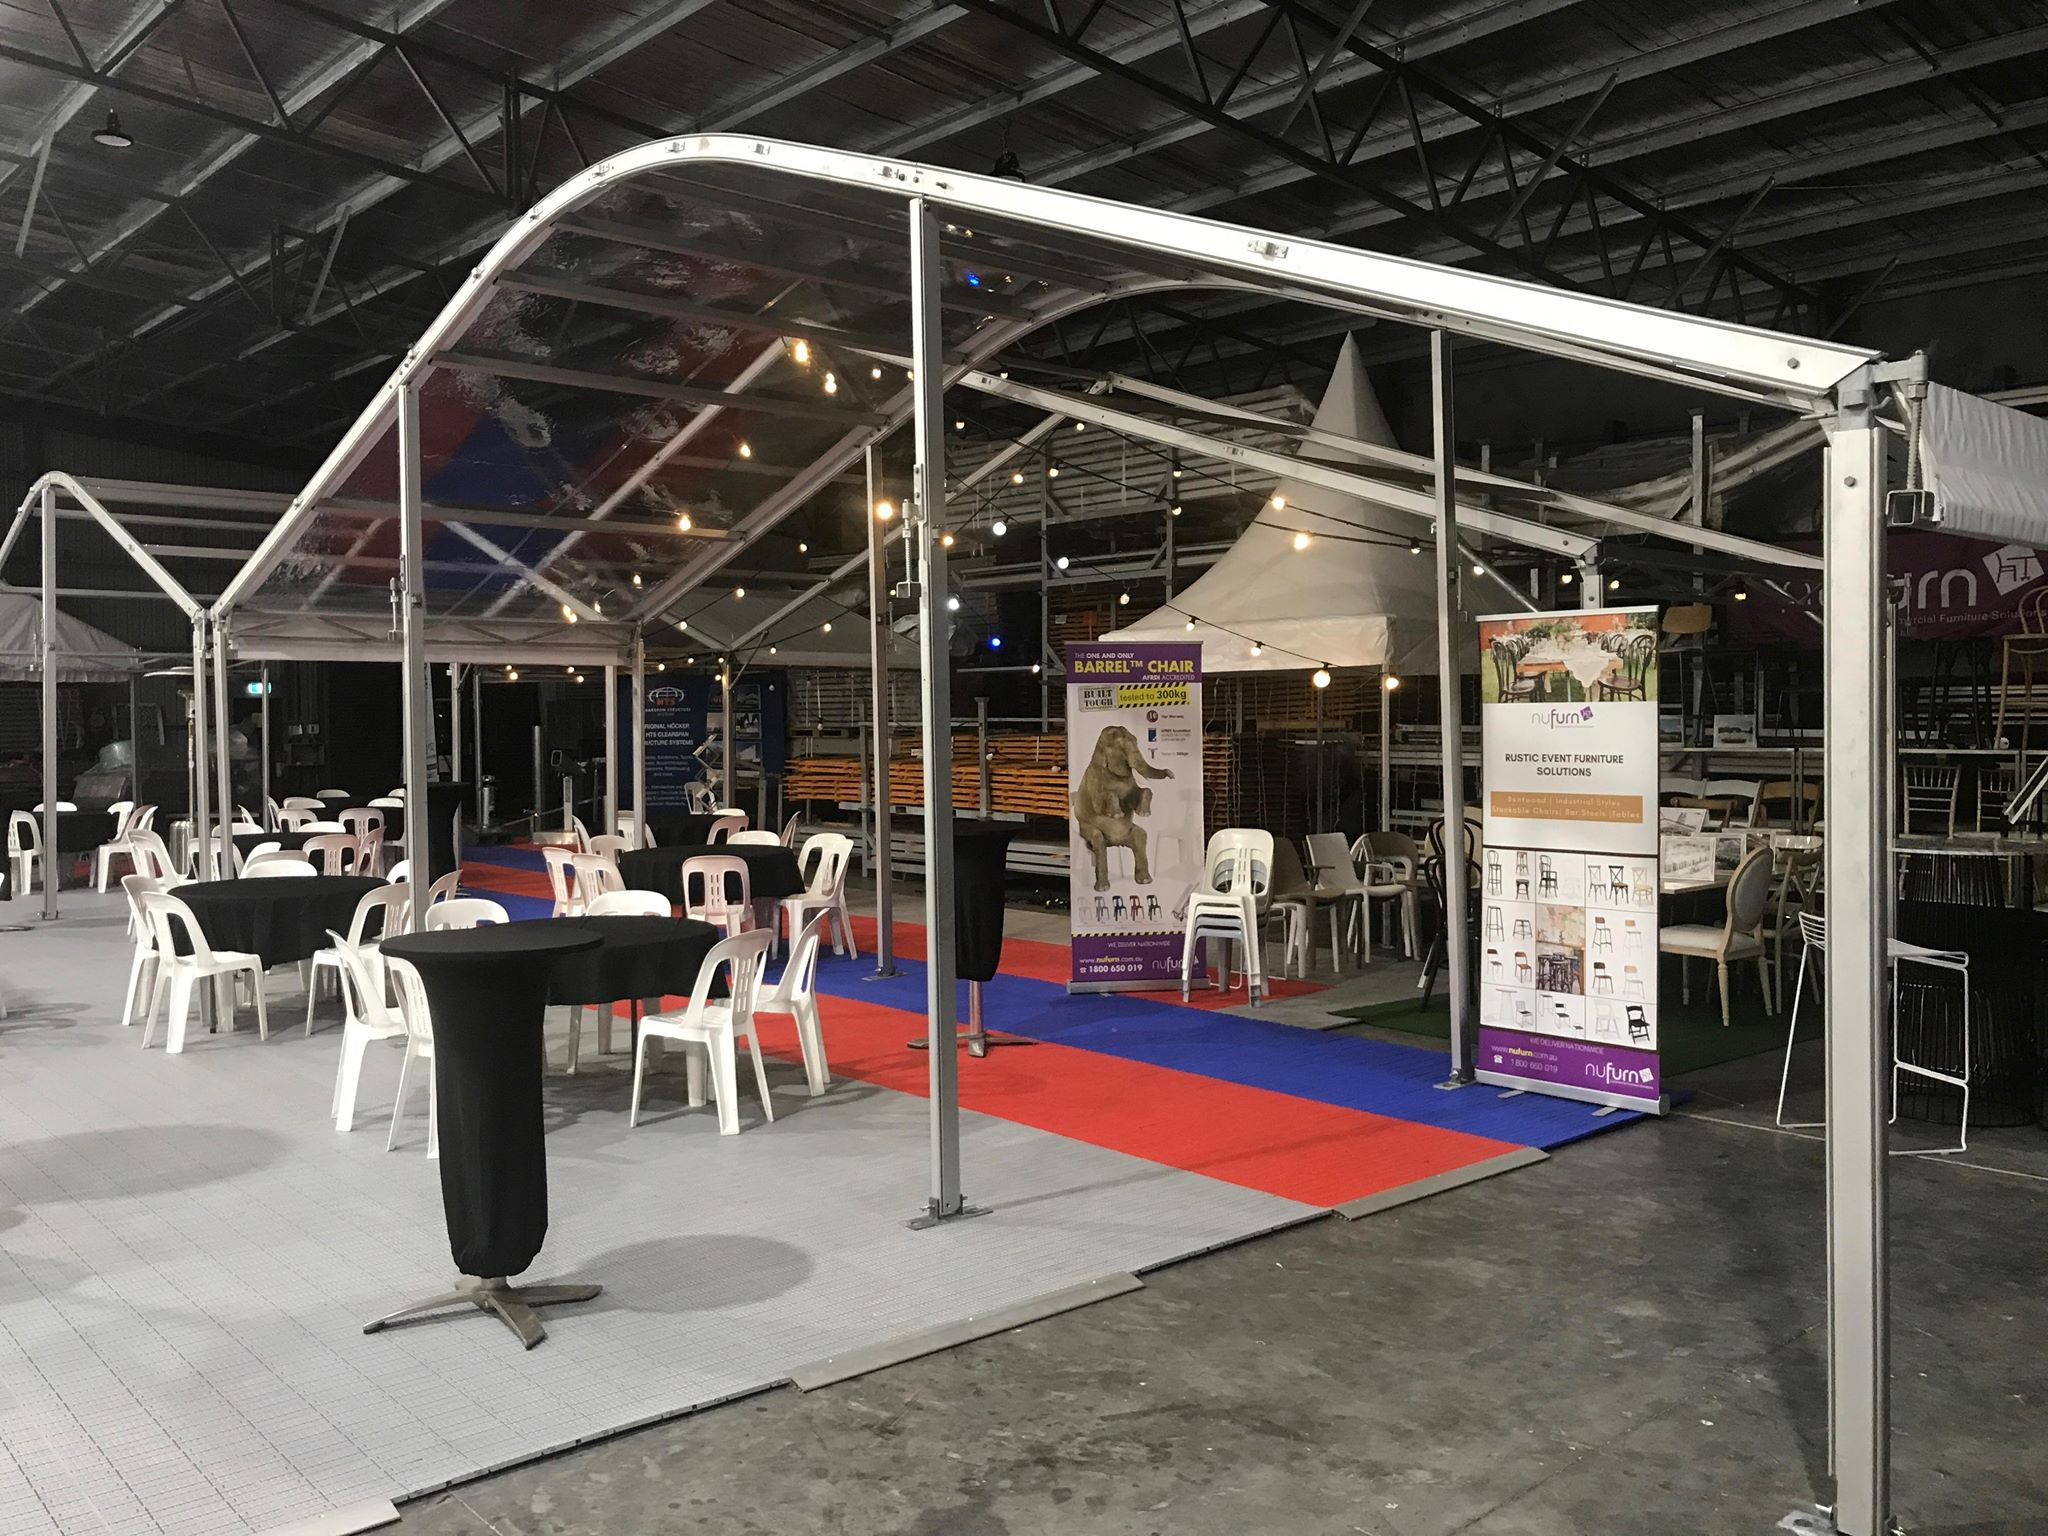 market-leading-event-hire-business-in-tasmania-first-time-offered-to-market-3